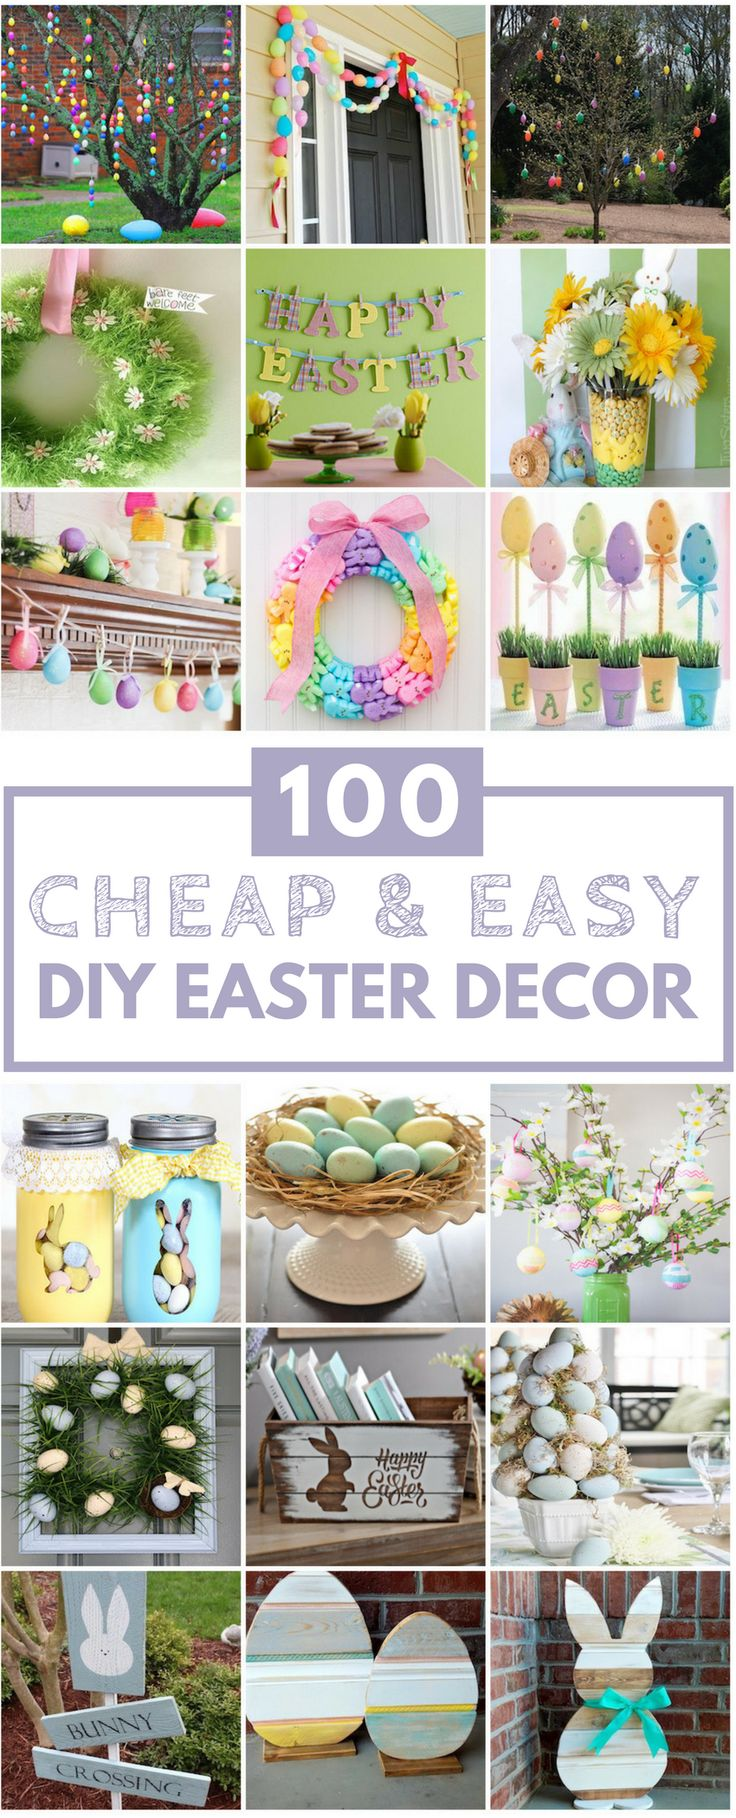 Best 25 diy easter decorations ideas on pinterest easter crafts 100 cheap and easy diy easter decorations solutioingenieria Gallery